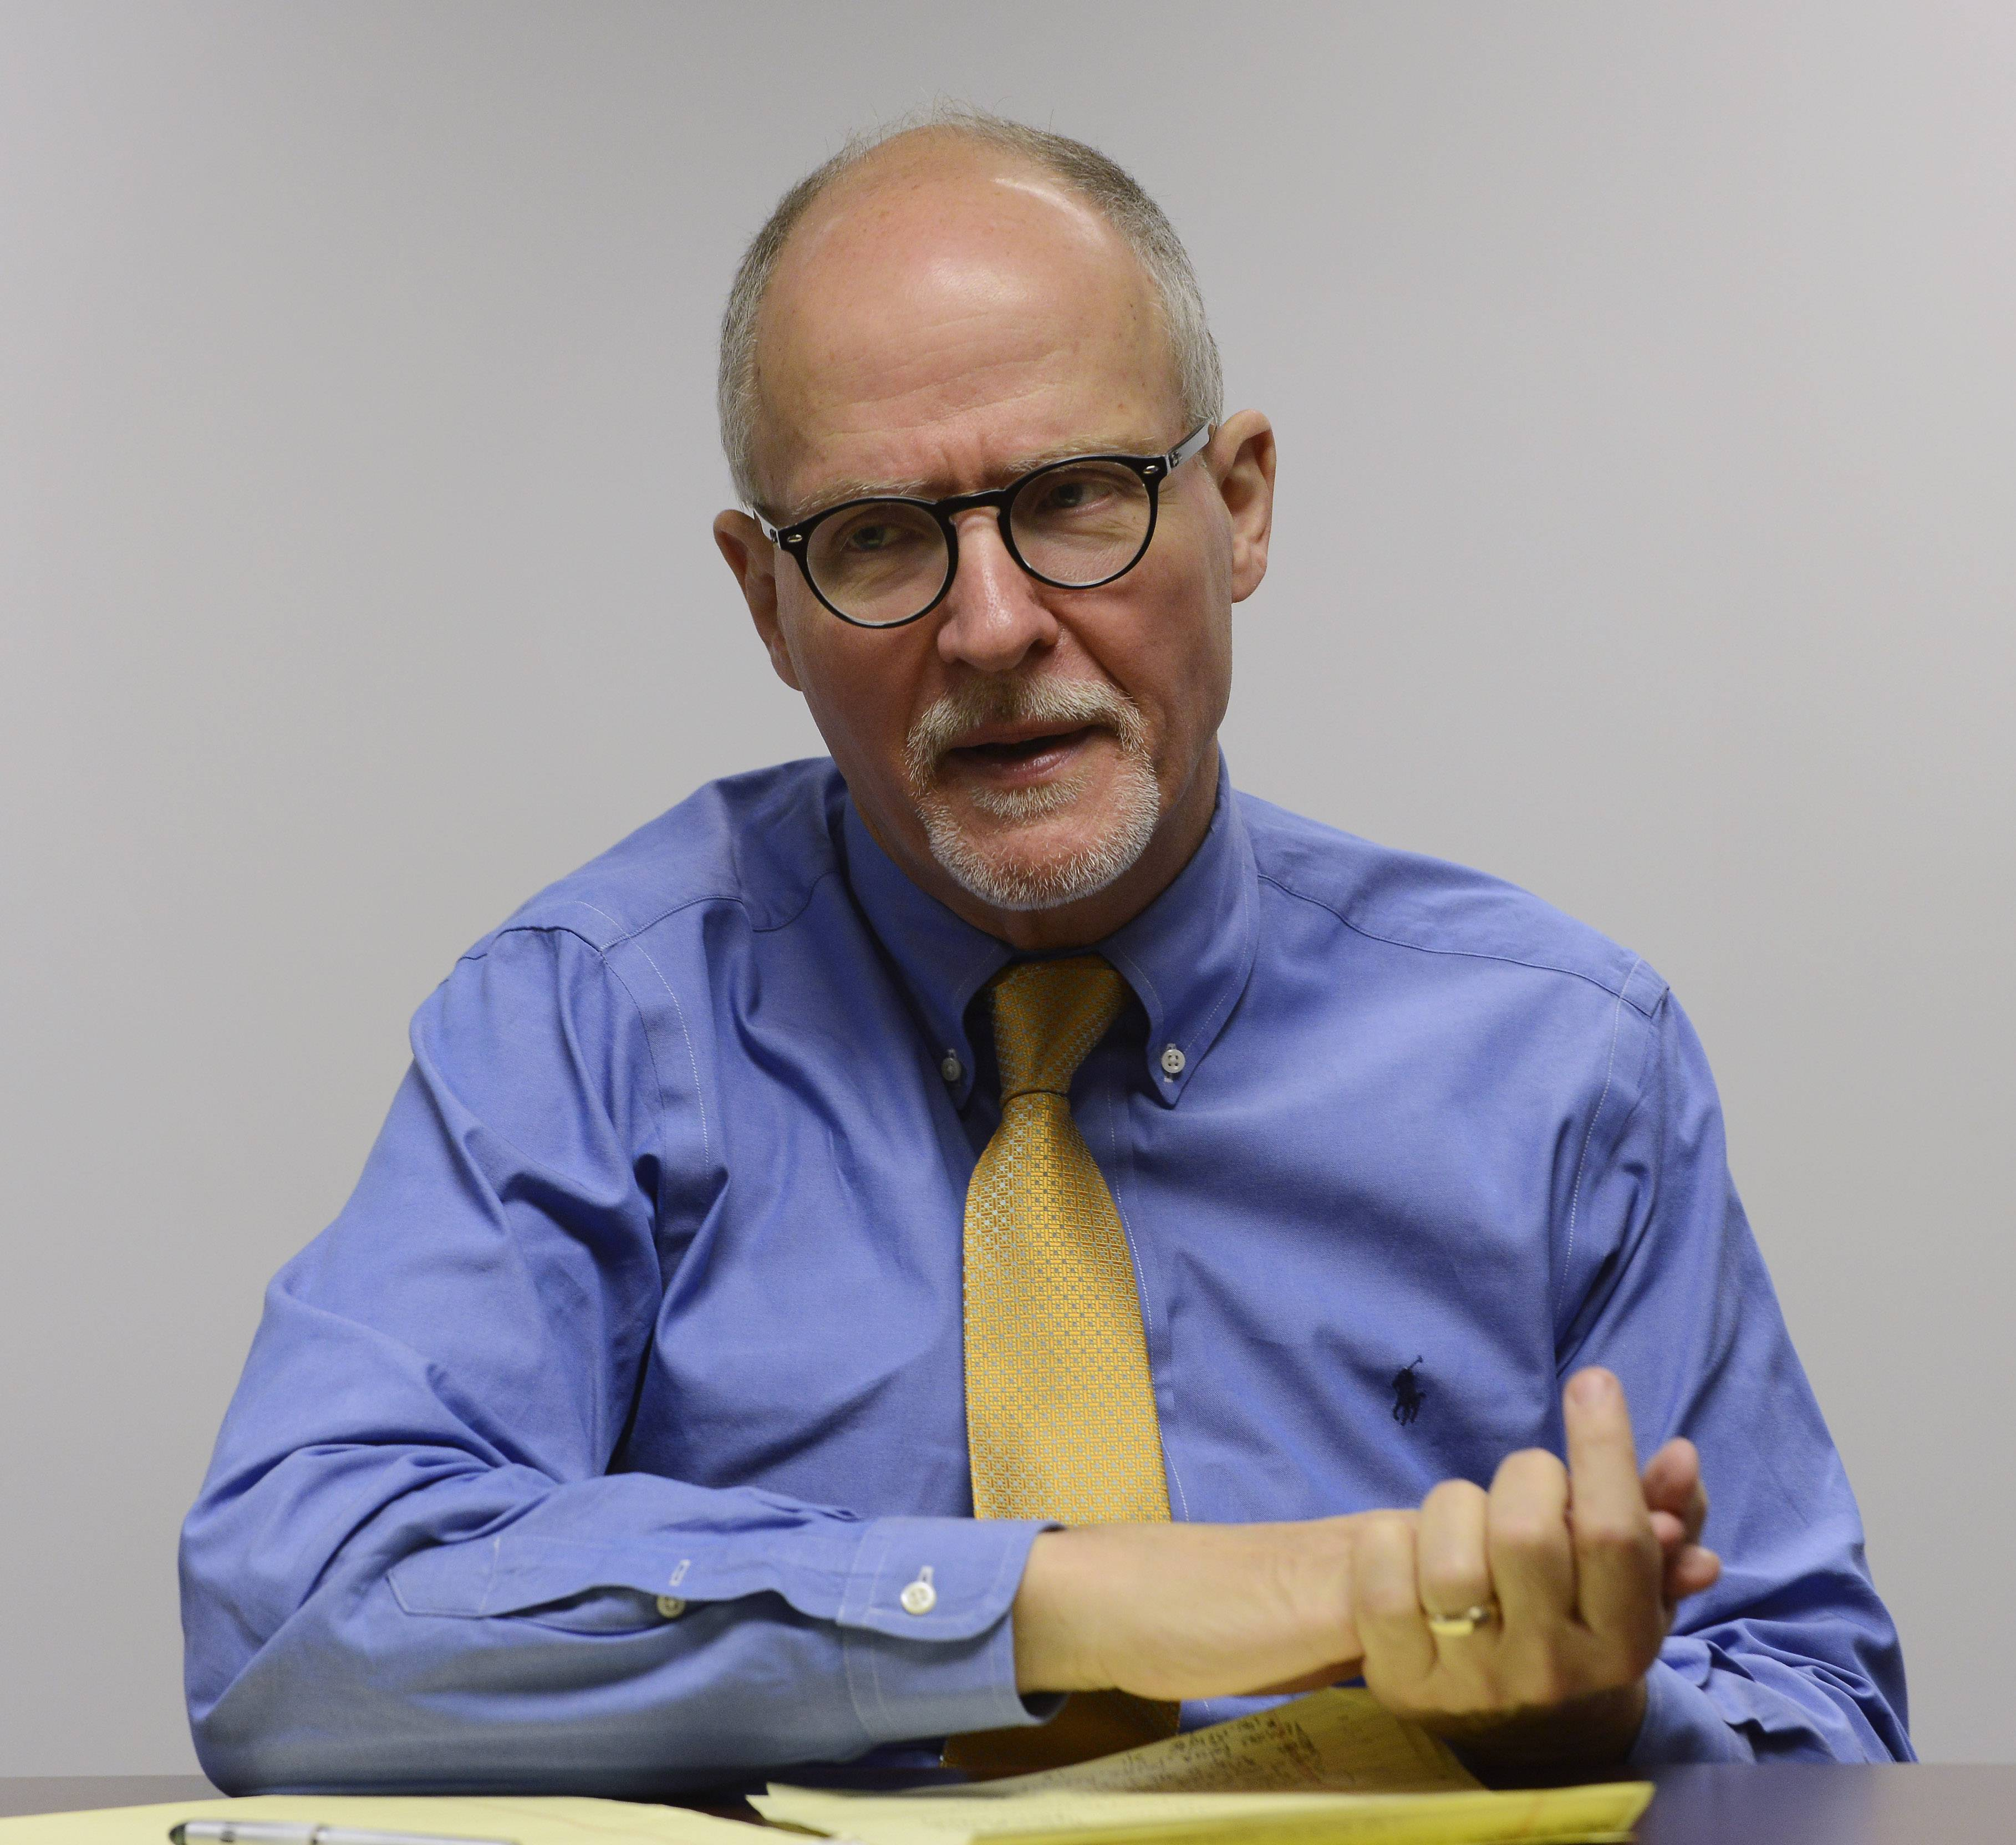 Former Chicago schools CEO Paul Vallas said a move to shift some special education funds away from schools that can raise more through property taxes was unwise because it pits the suburbs against other parts of the state.